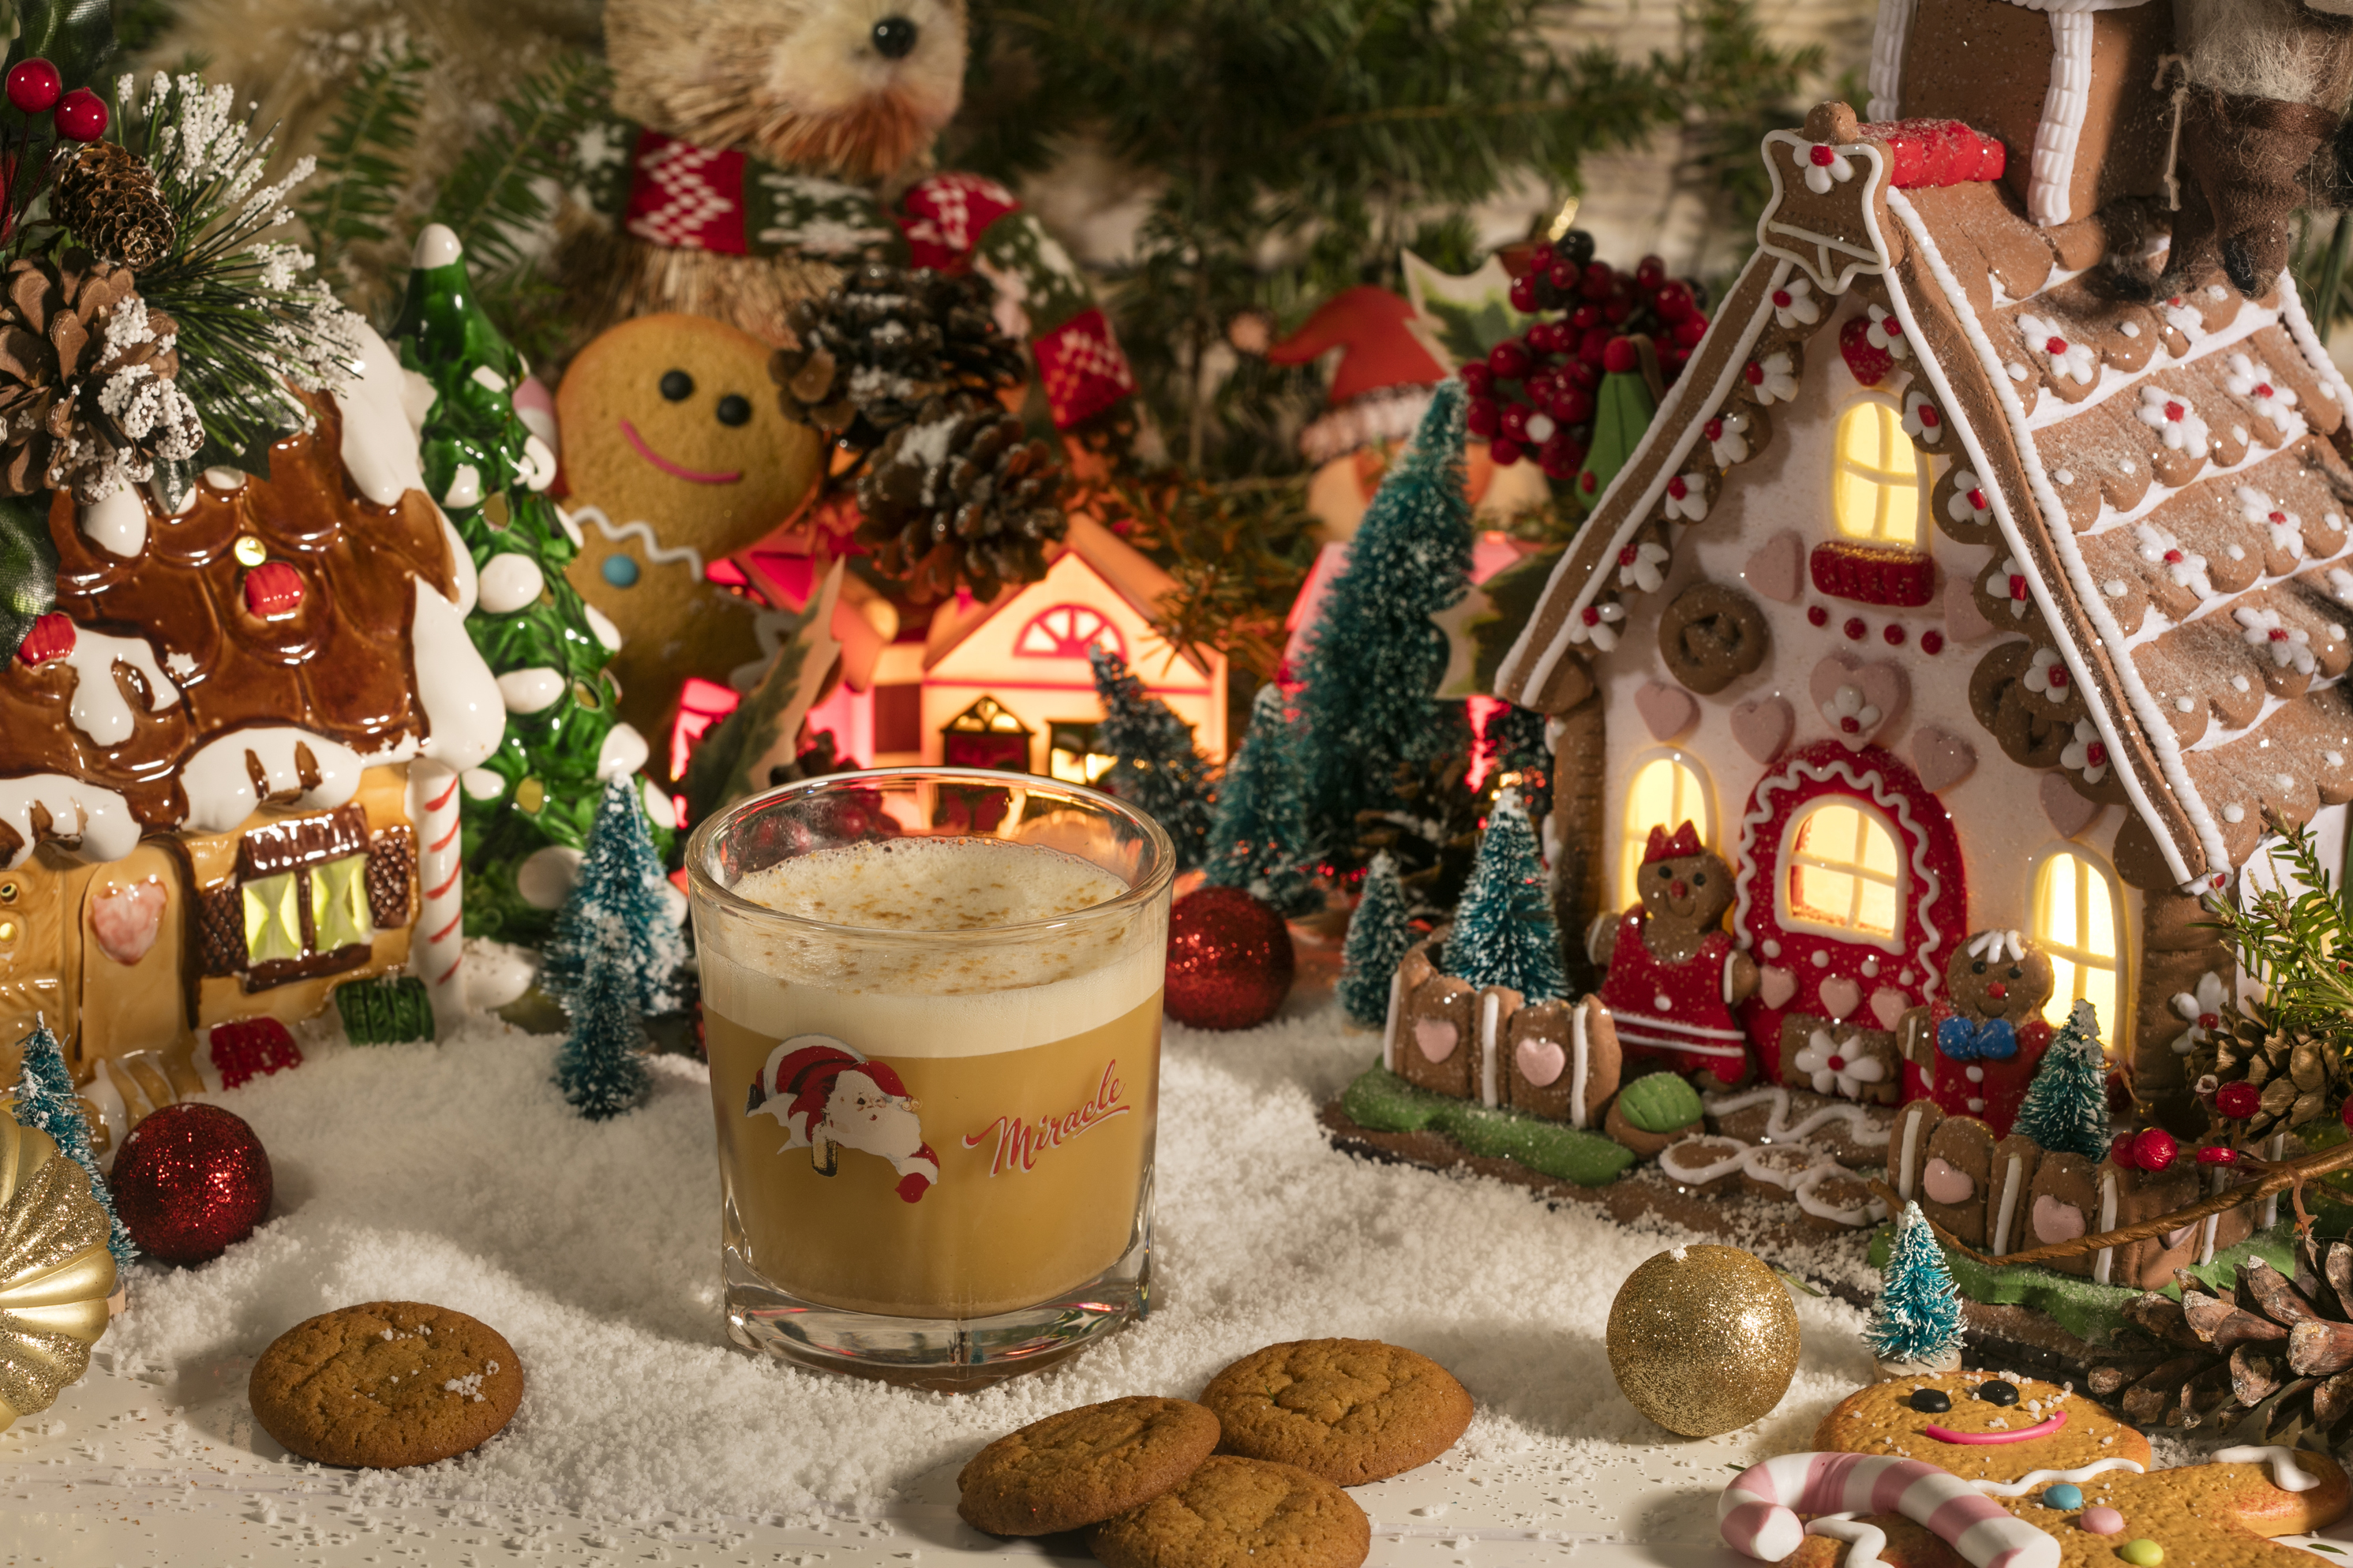 A holiday gingerbread tableau with a glass of eggnog surrounded by fake snow, toys, miniature trees, and cookies.